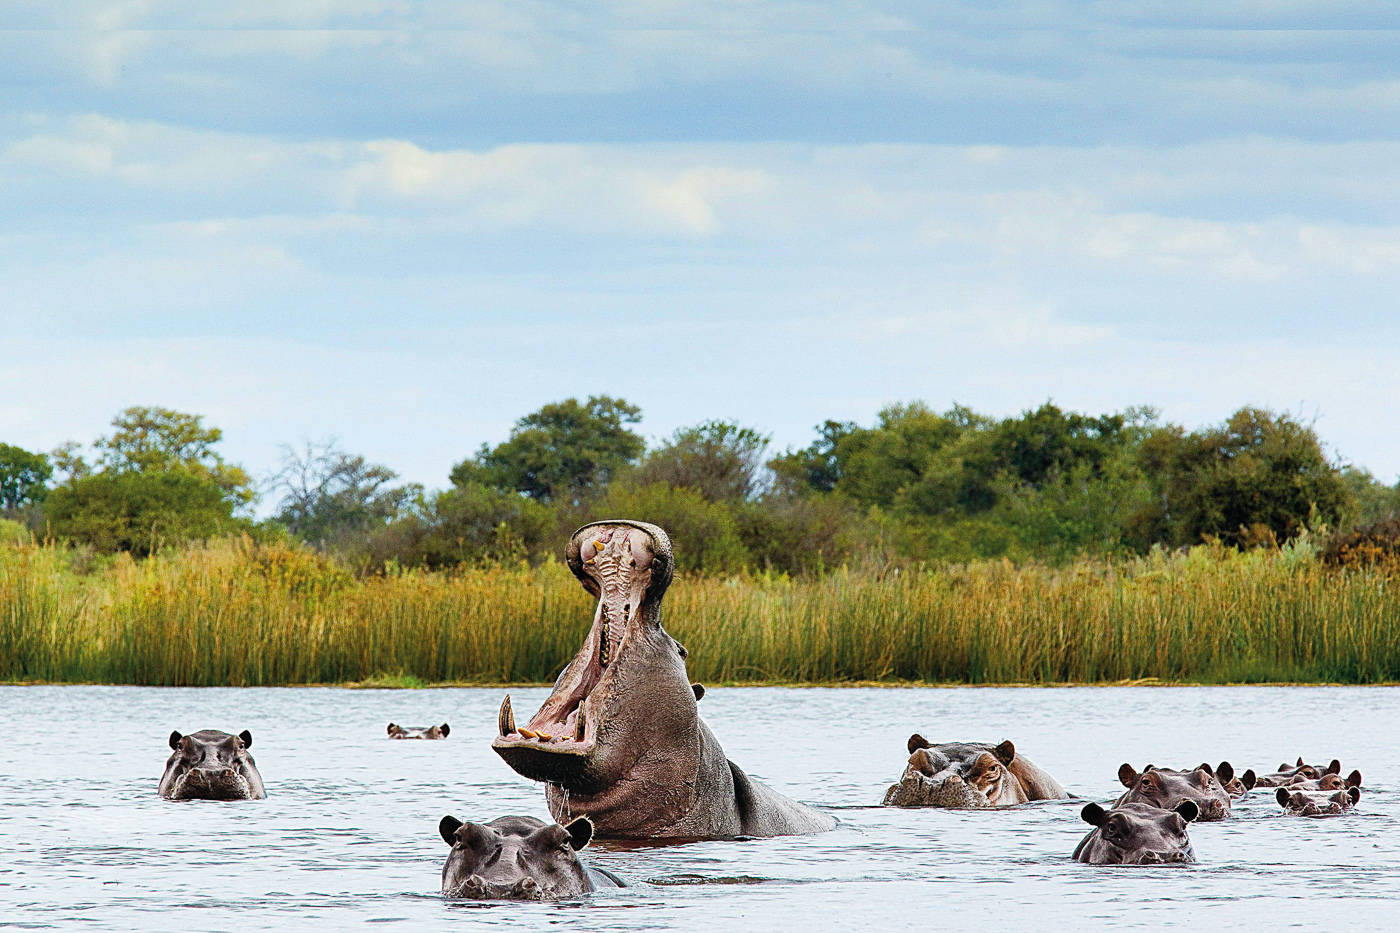 Belligerent hippo in river